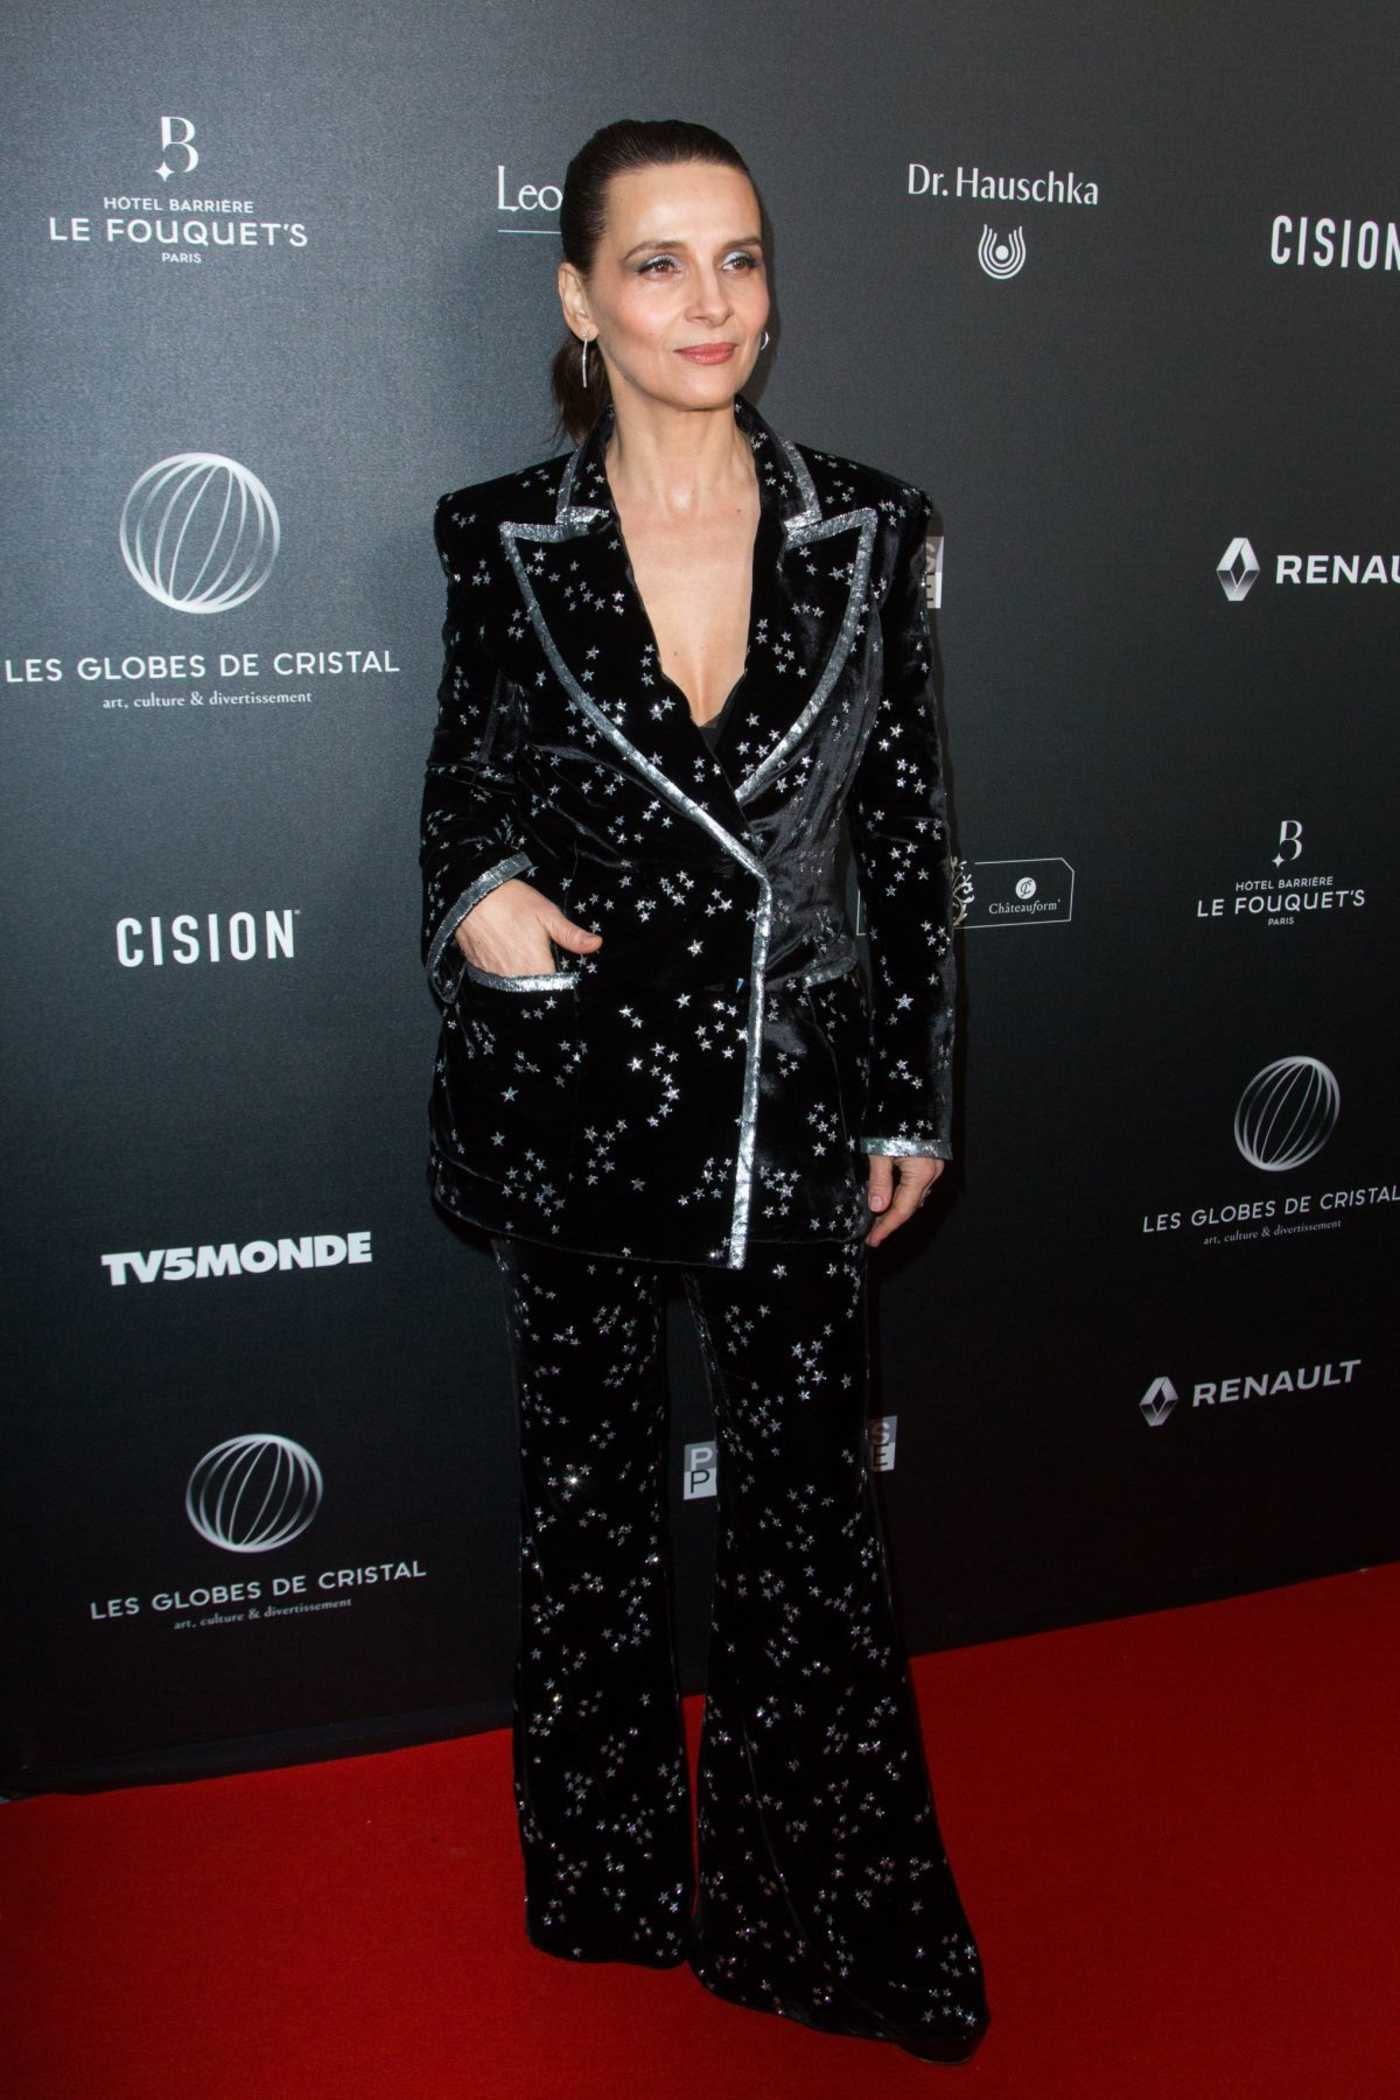 Juliette Binoche Attends the 14th Globe De Cristal Awards in Paris 02/04/2019